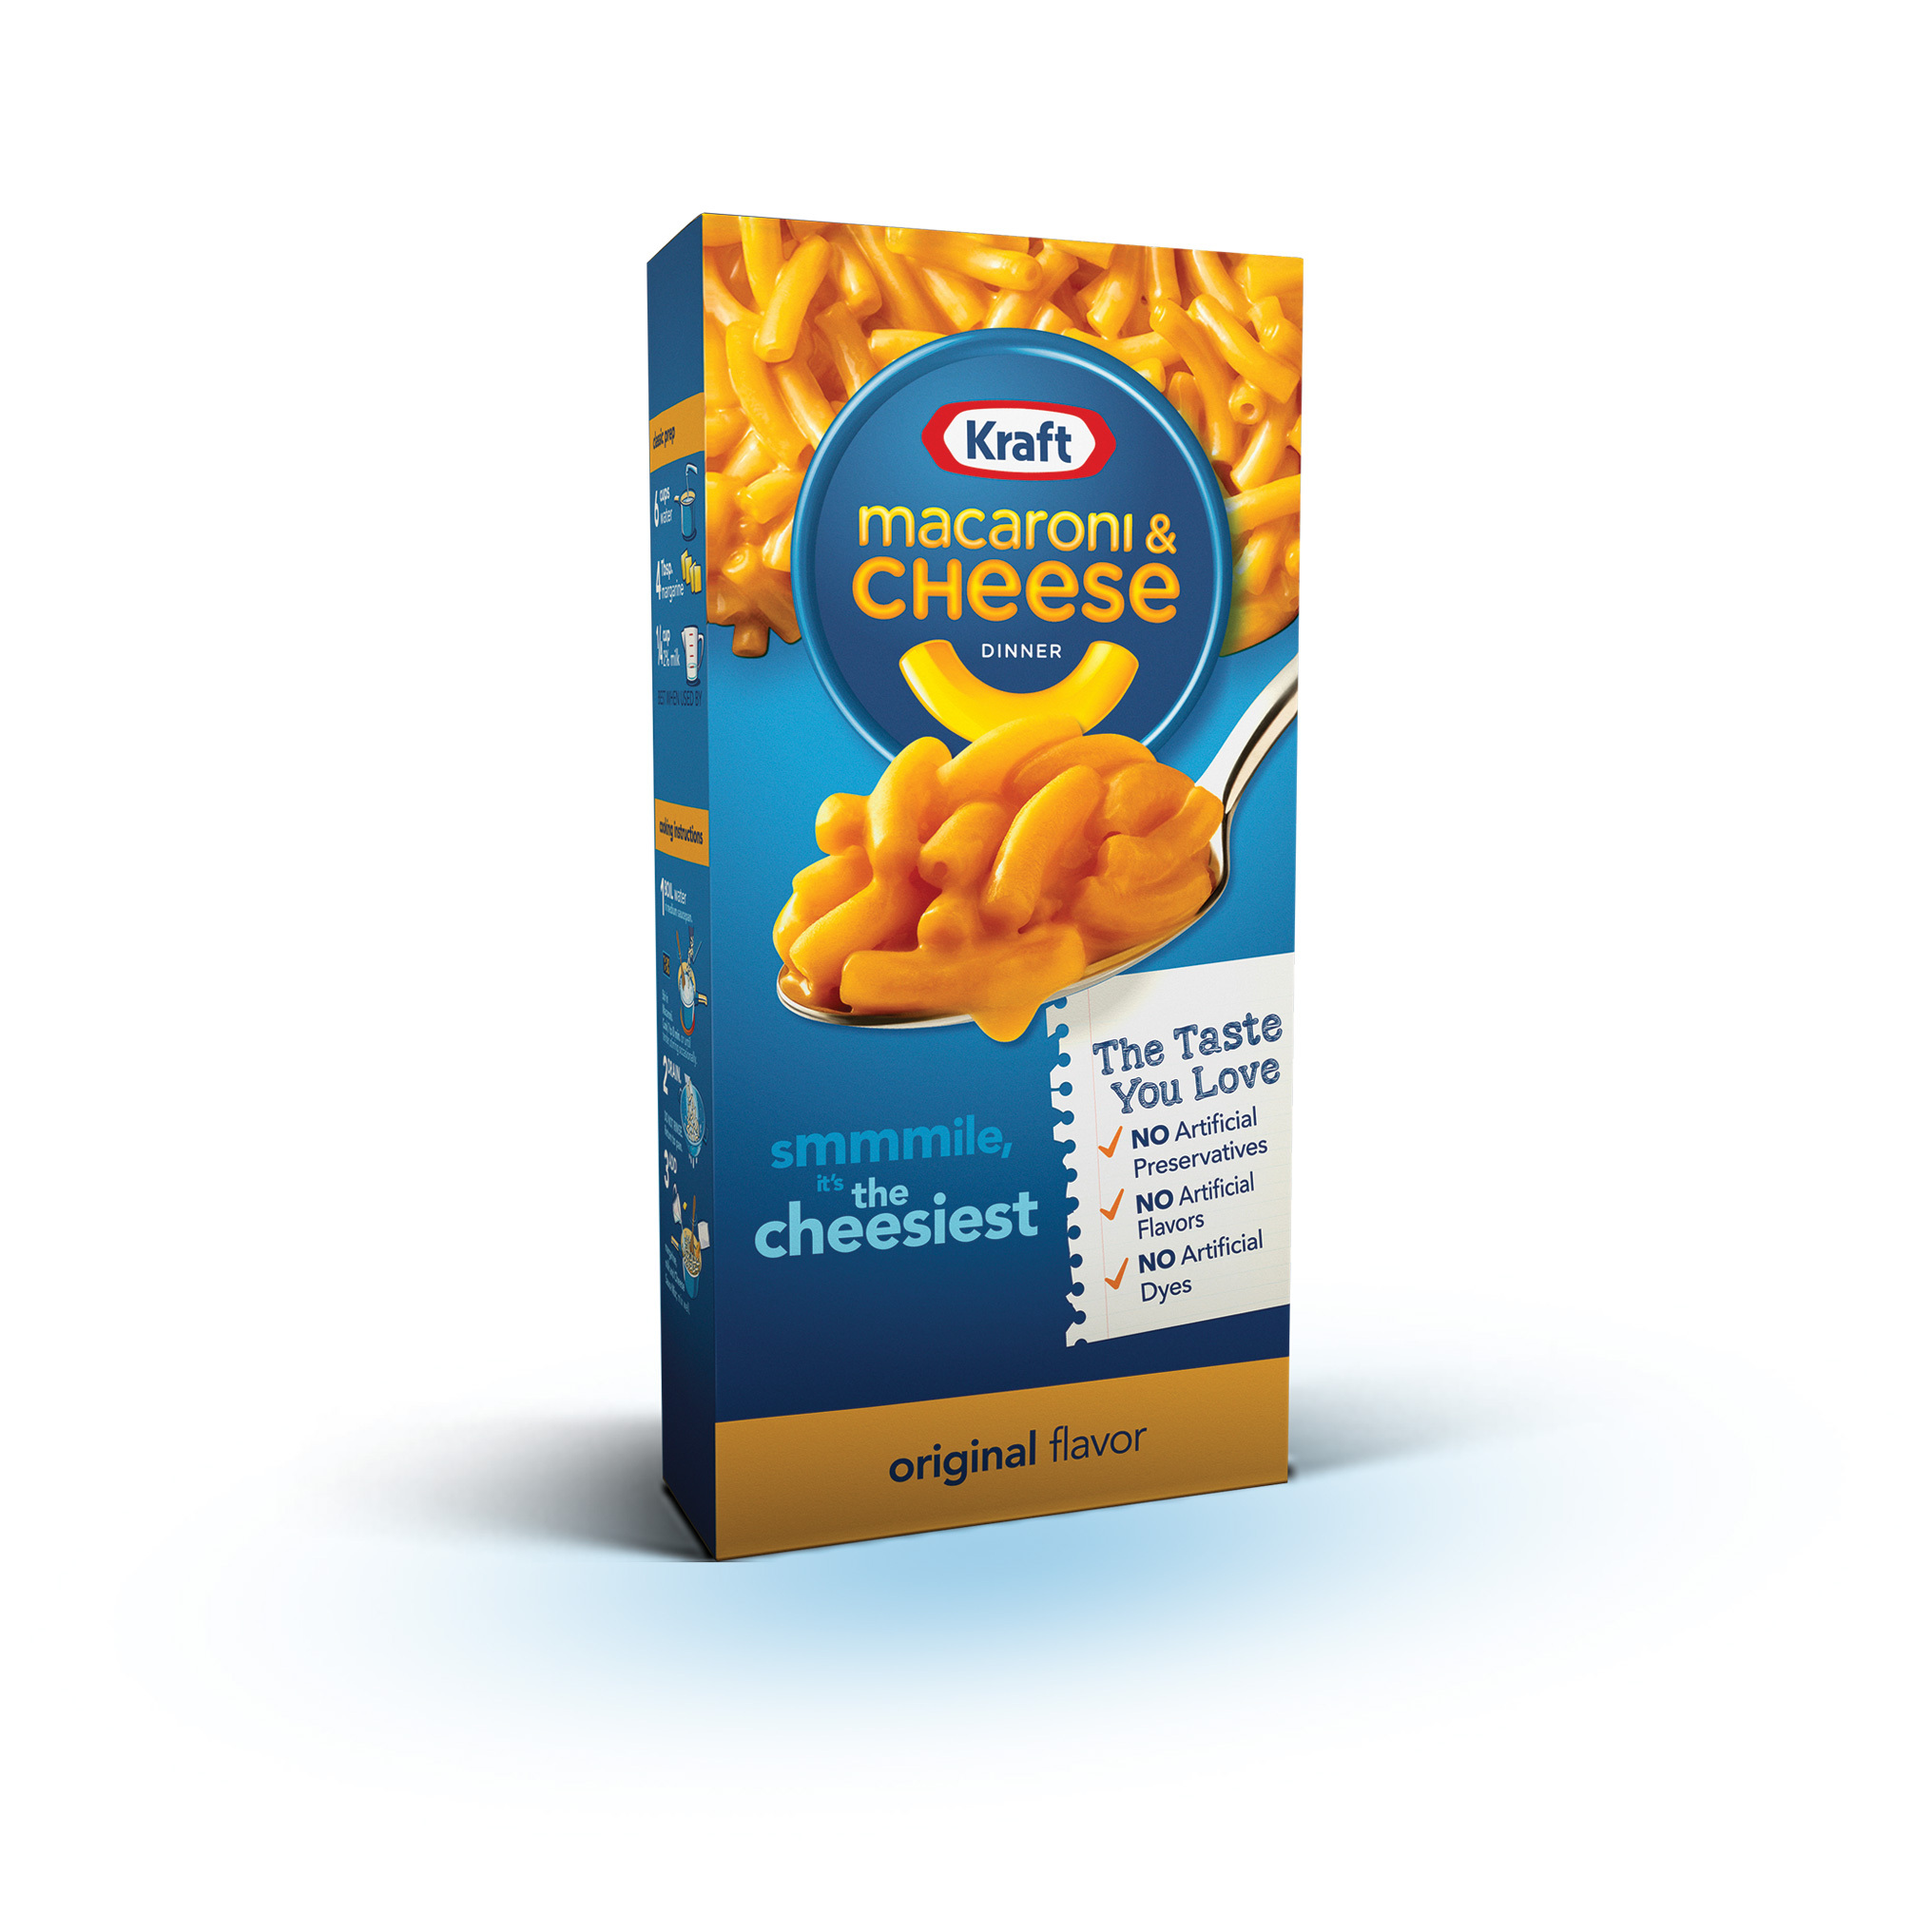 Kraft Macaroni and Cheese New Product Package (Photo: Business Wire)